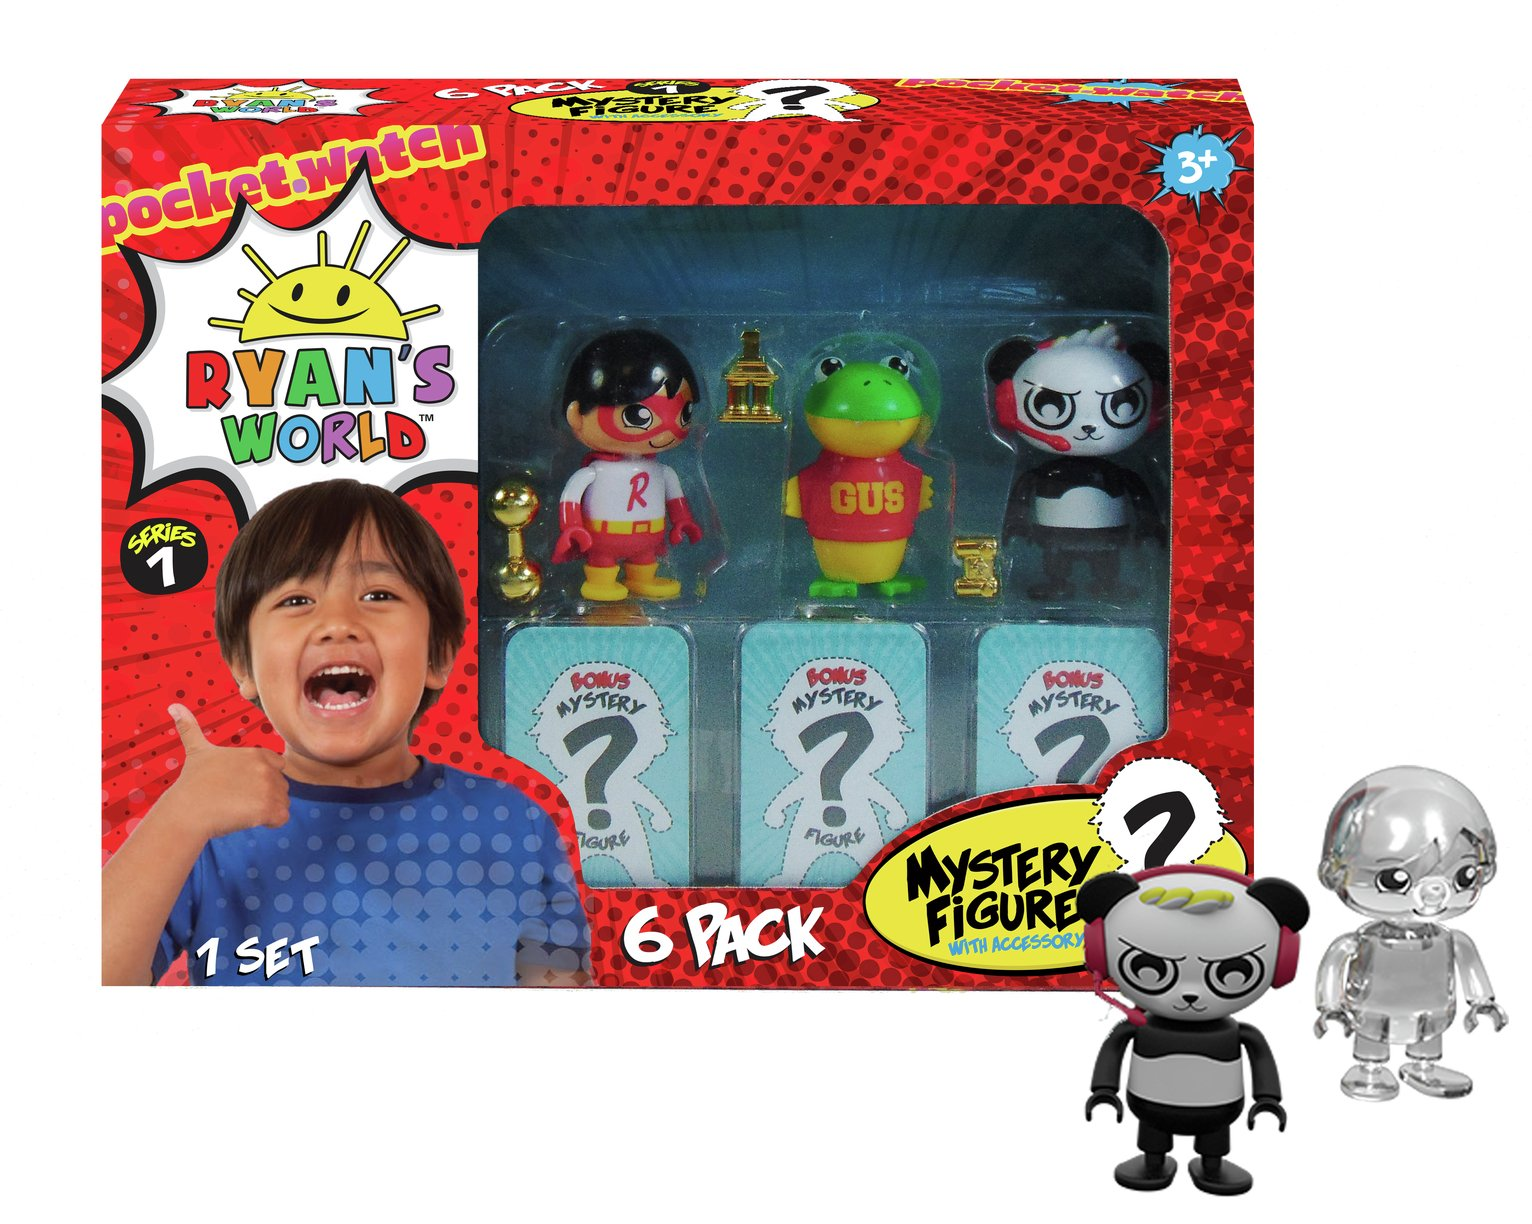 Ryans World 6 Pack Collectible Figure Set